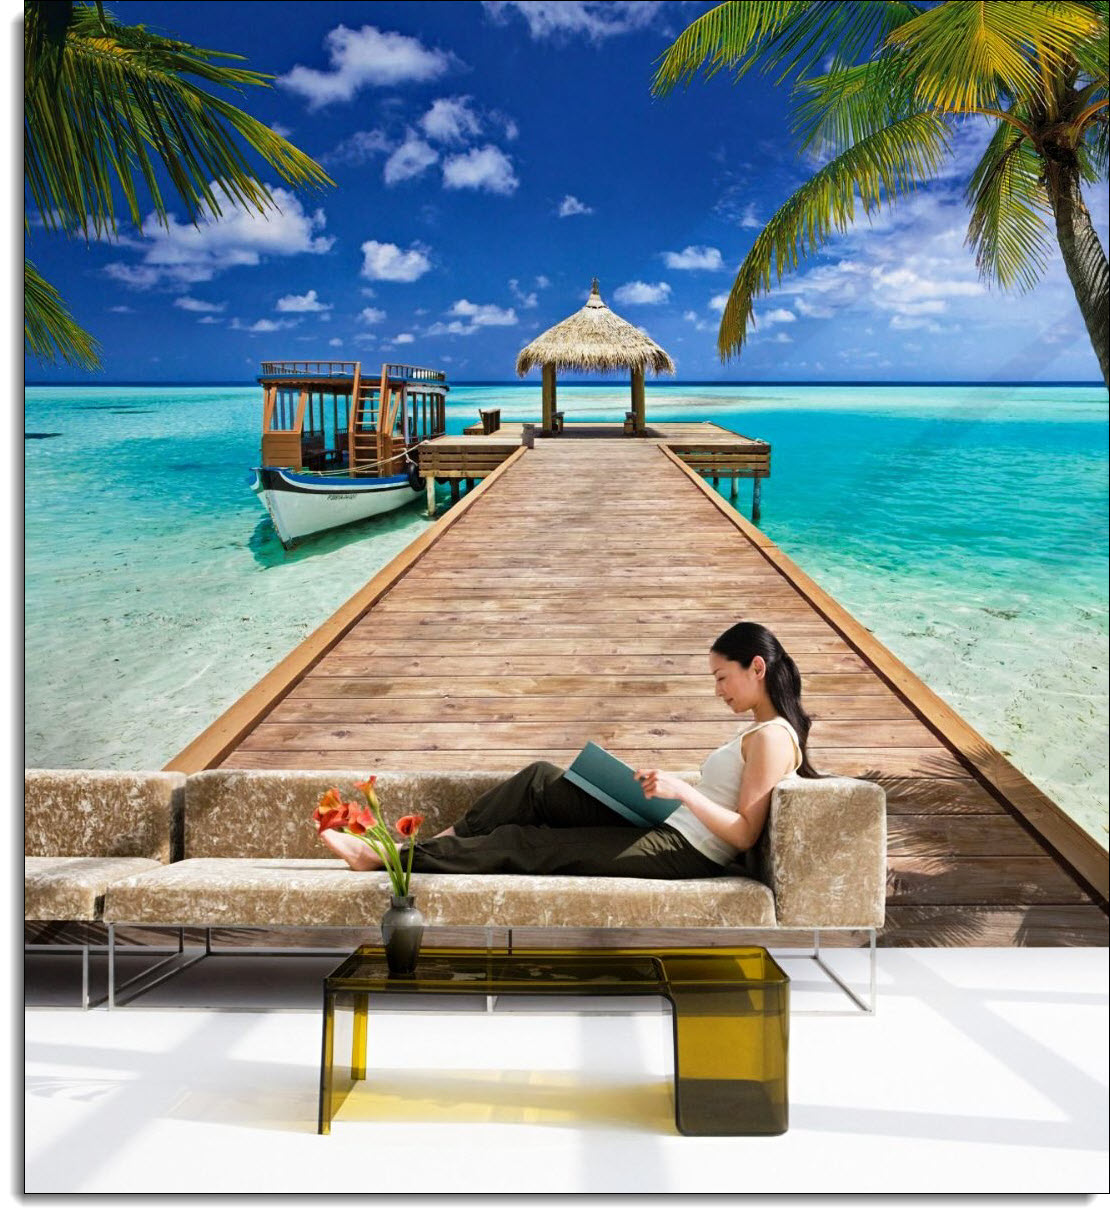 Beach resort wall mural 8 921 for Beach scene mural wallpaper